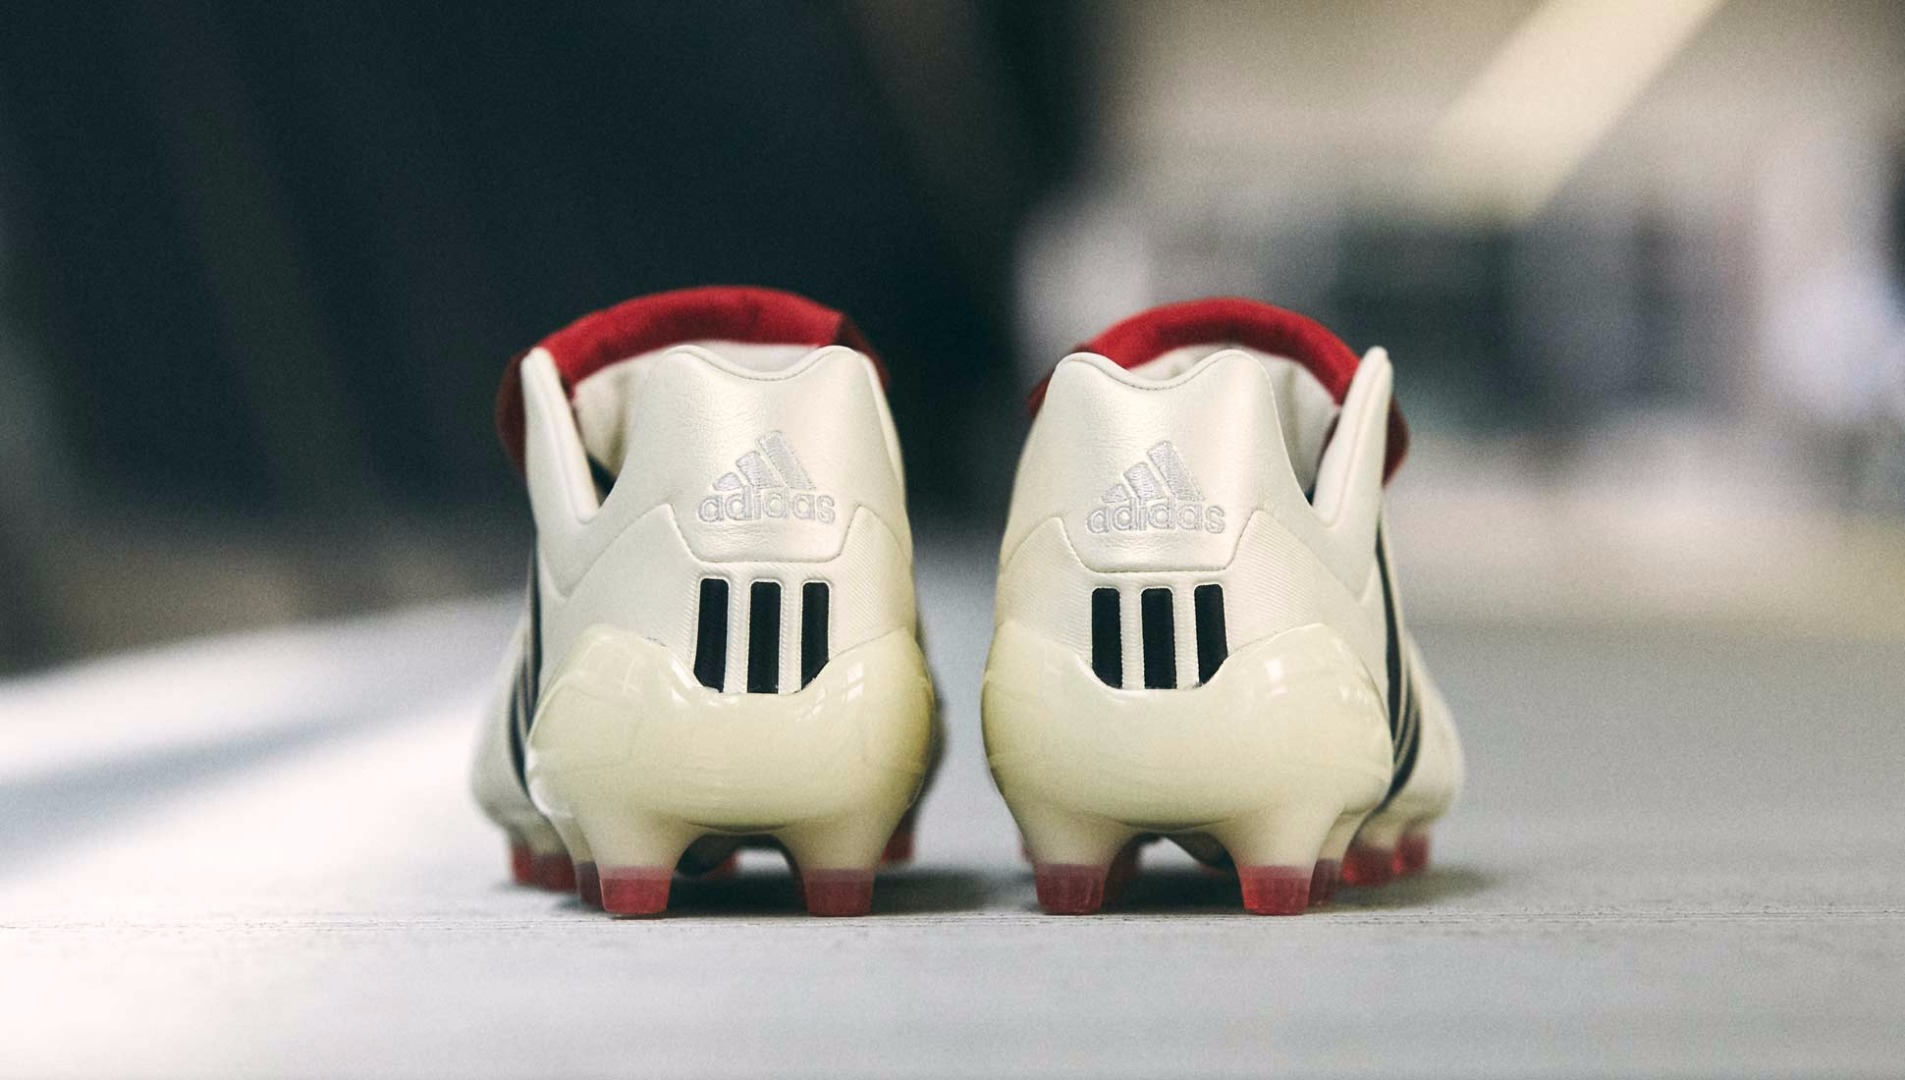 c9a0e3309 adidas 2017 Champagne Football Boots Collection - SoccerBible